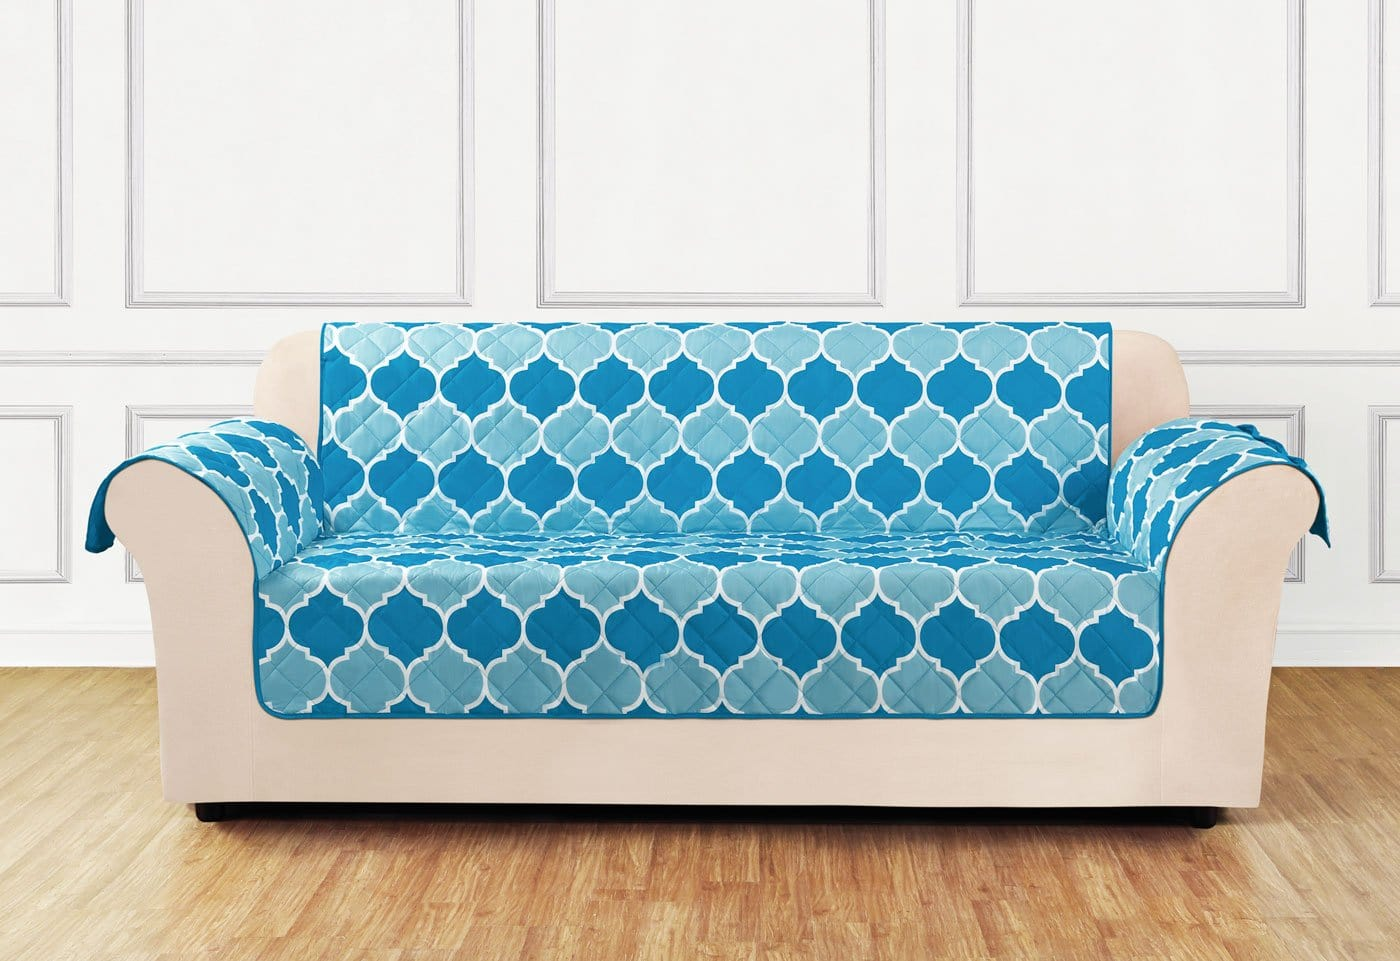 Furniture Flair Sofa Furniture Cover 100% Polyester Pet Furniture Cover Machine Washable - Sofa / Turquoise